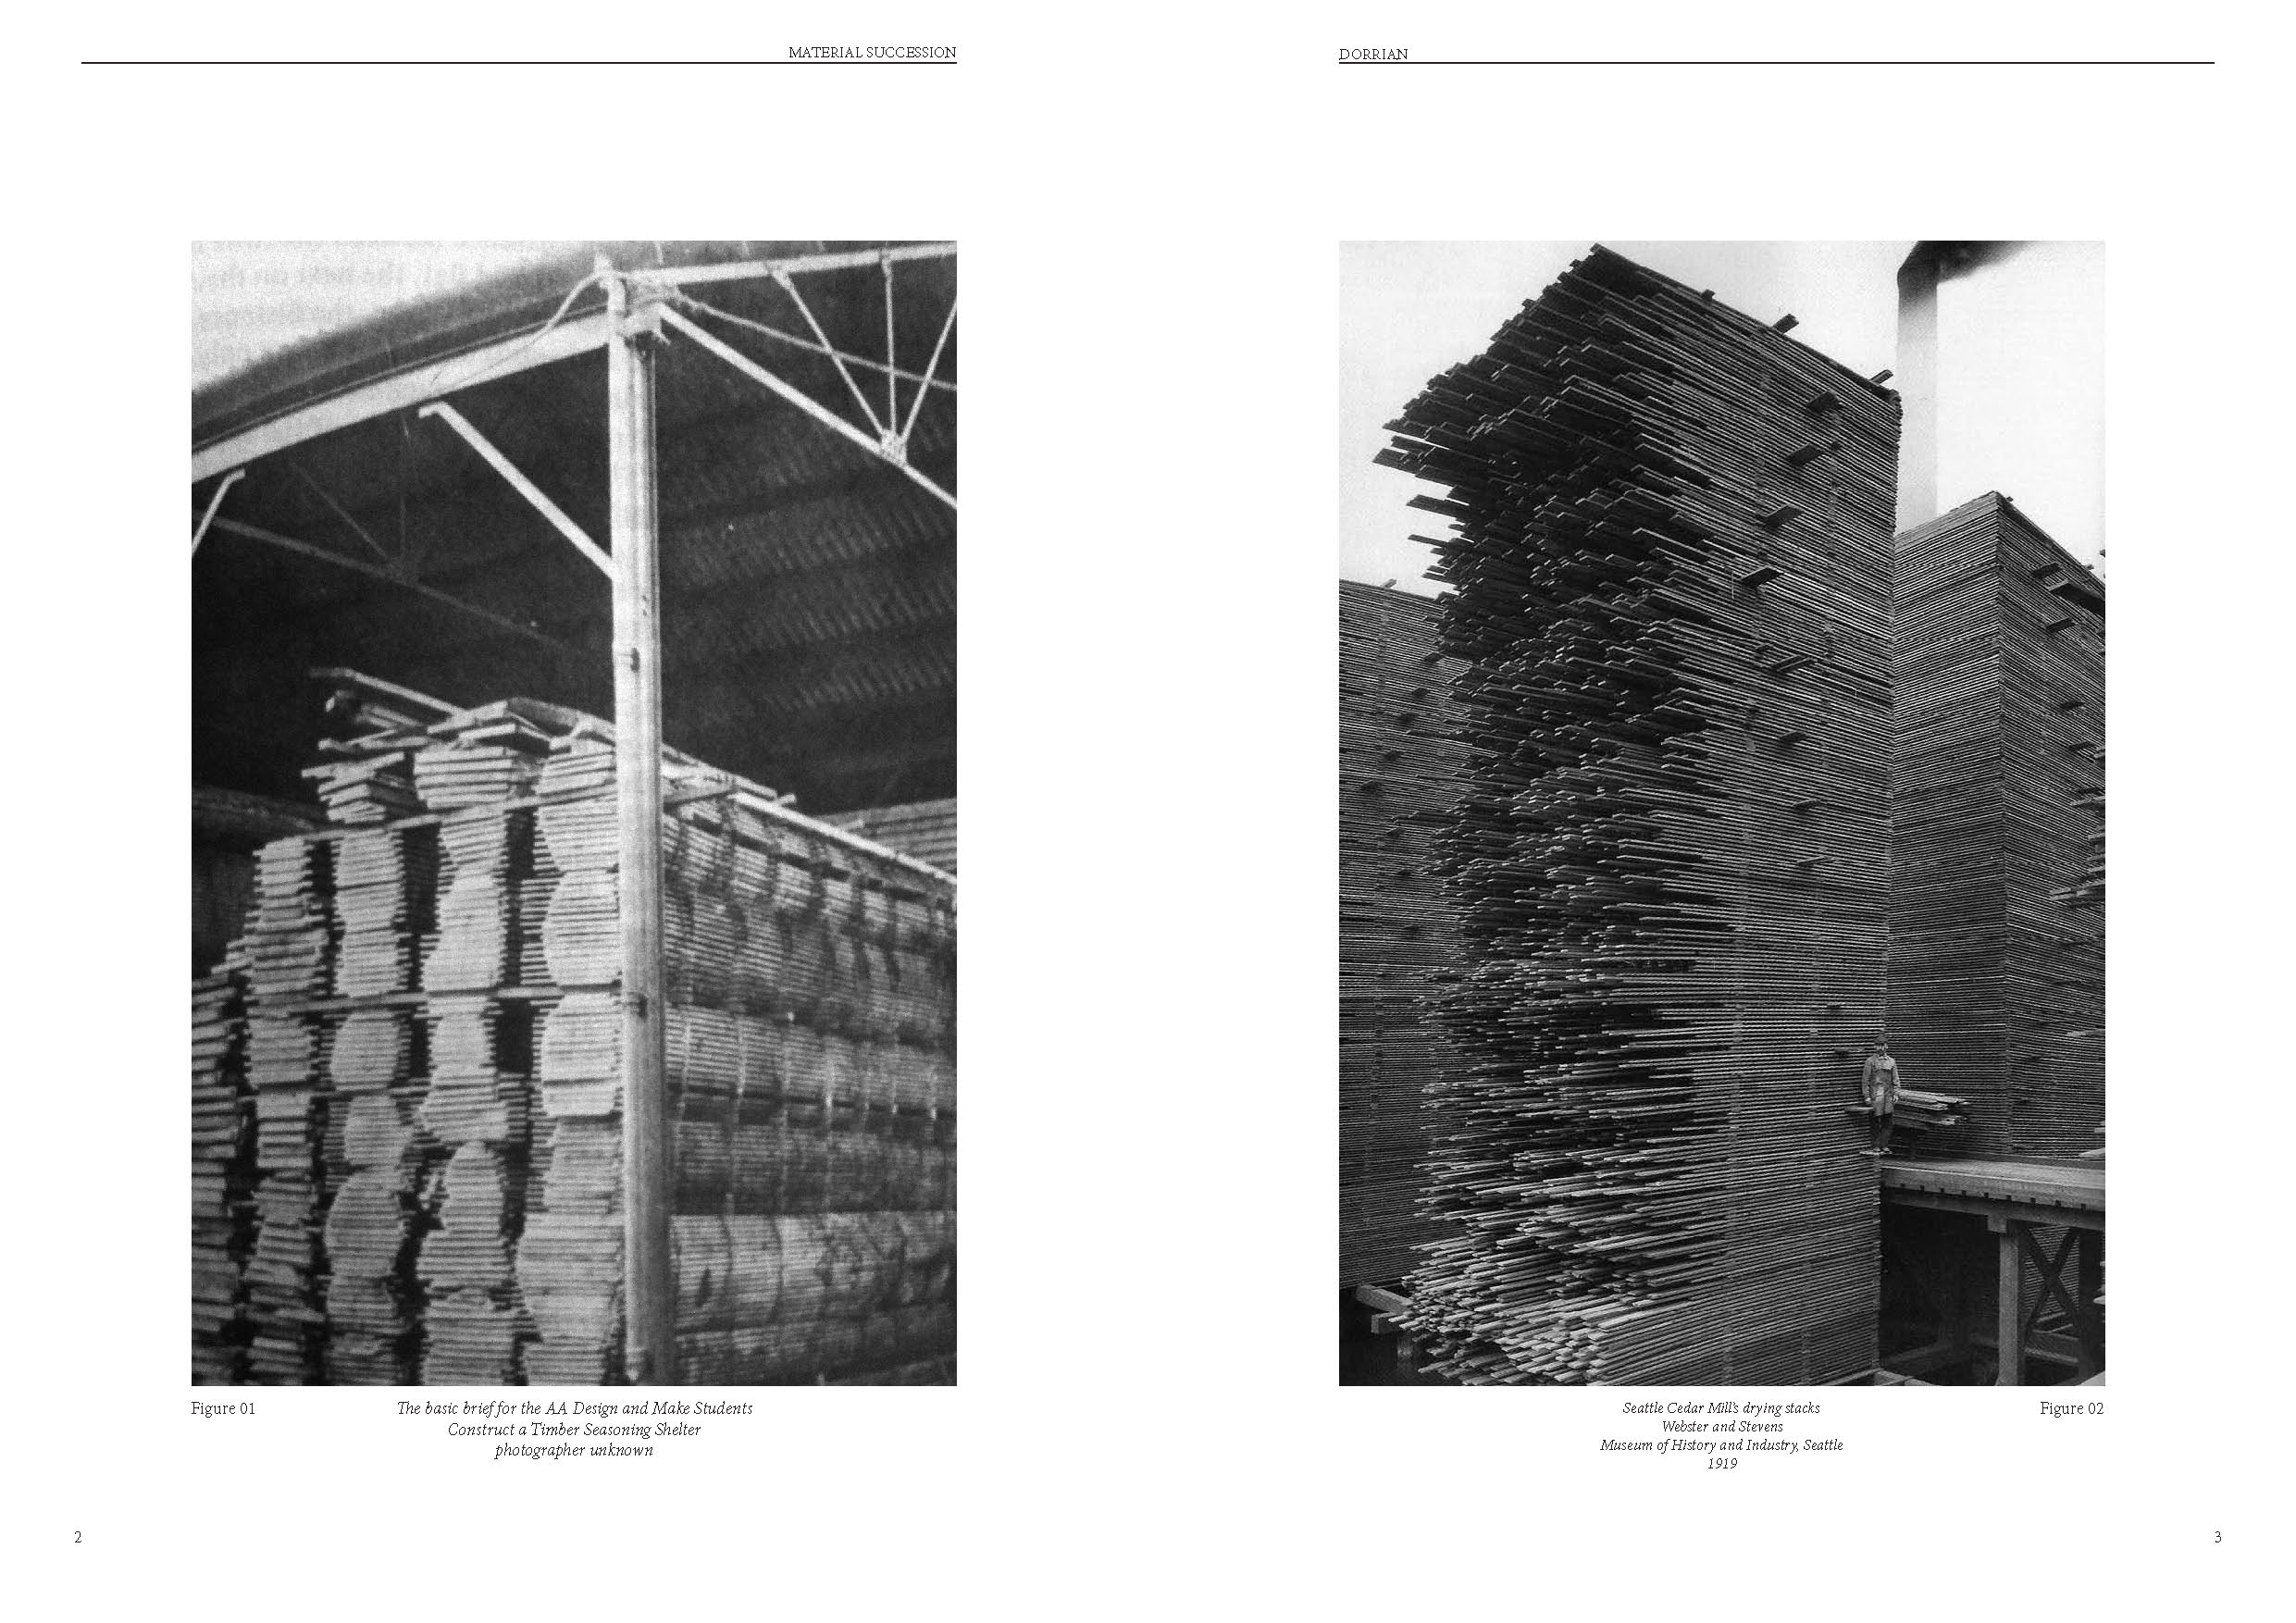 130131_Material SuccessionFORSUBMITTAL_Page_06.jpg